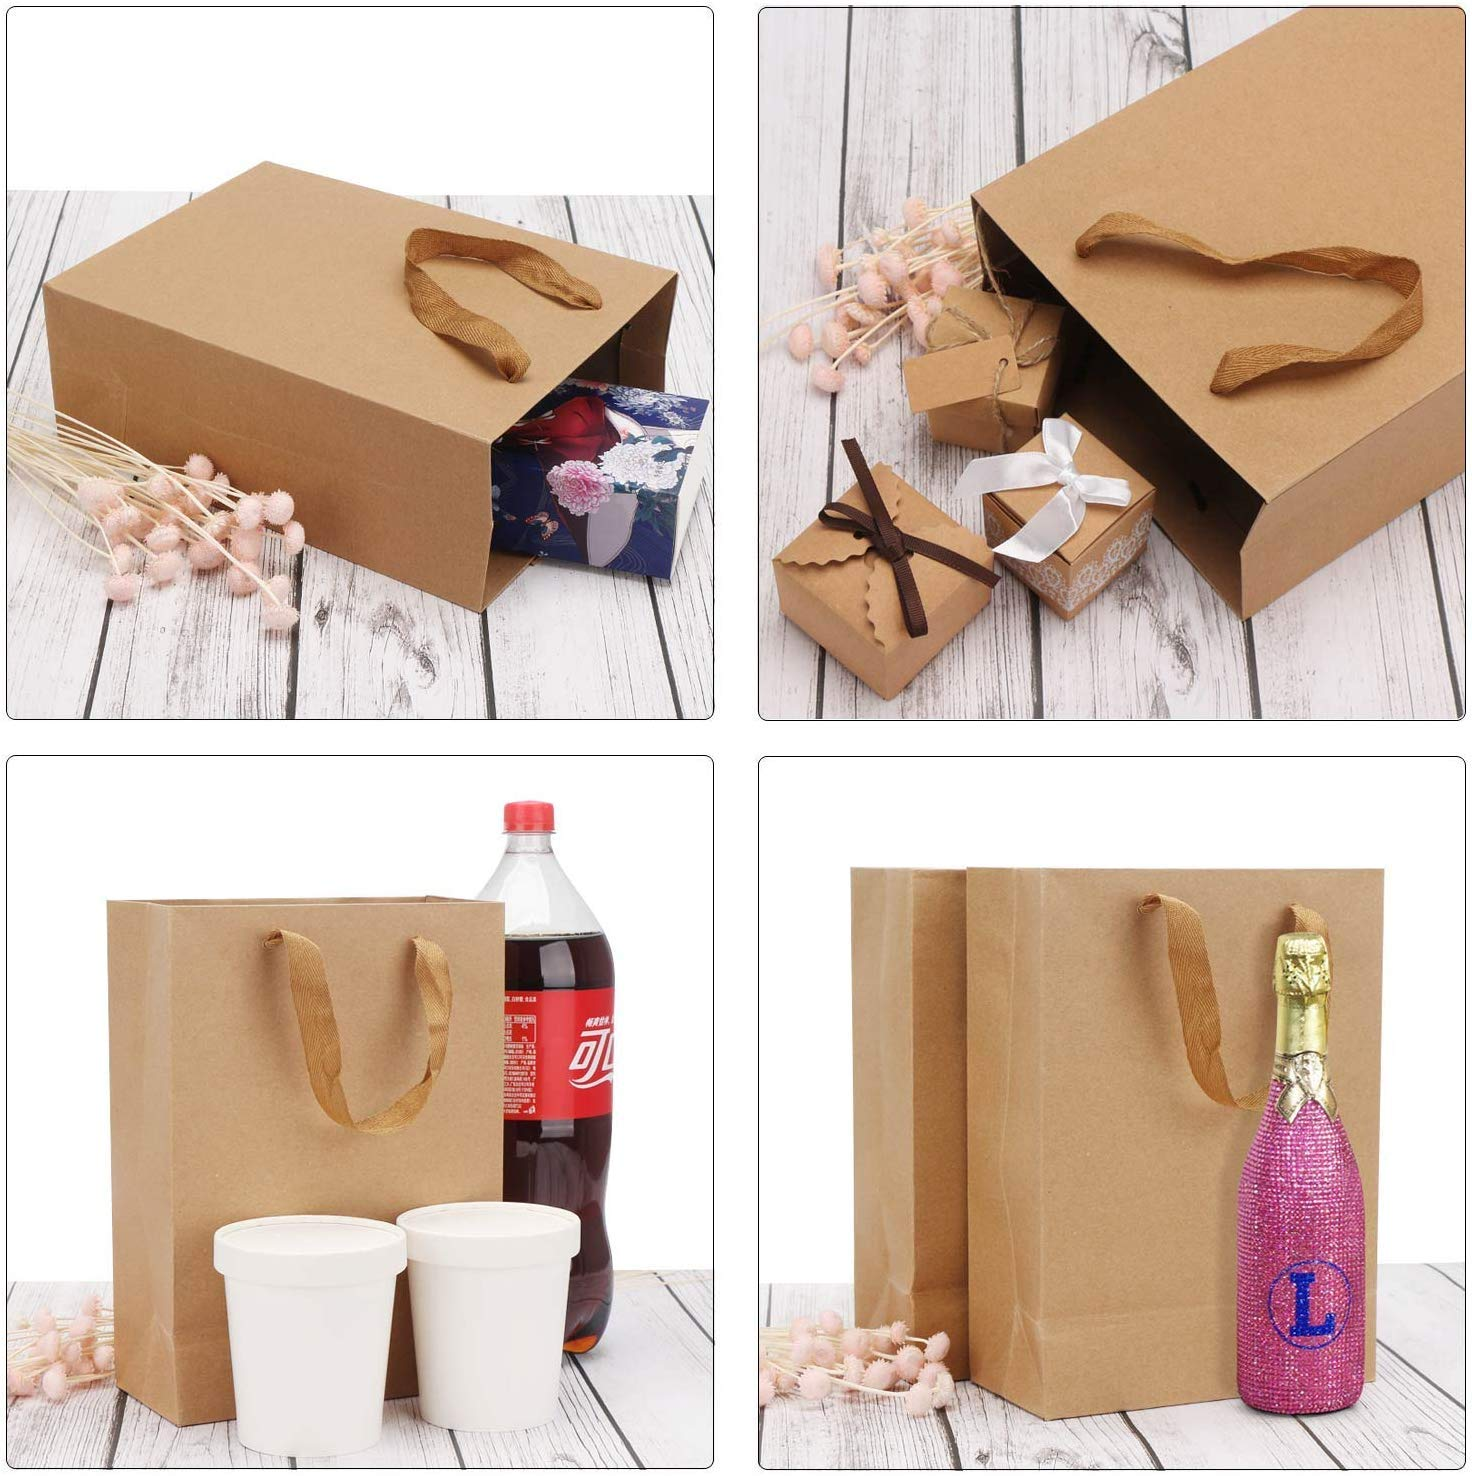 25pcs 9.8 * 5.1 * 12.6 Brown Kraft Gift Bags with Handles Wedding Party Bag Acidea Kraft Shopping Paper Bags Kraft Bags Retail Handle Bags Party Bags Merchandise Bag